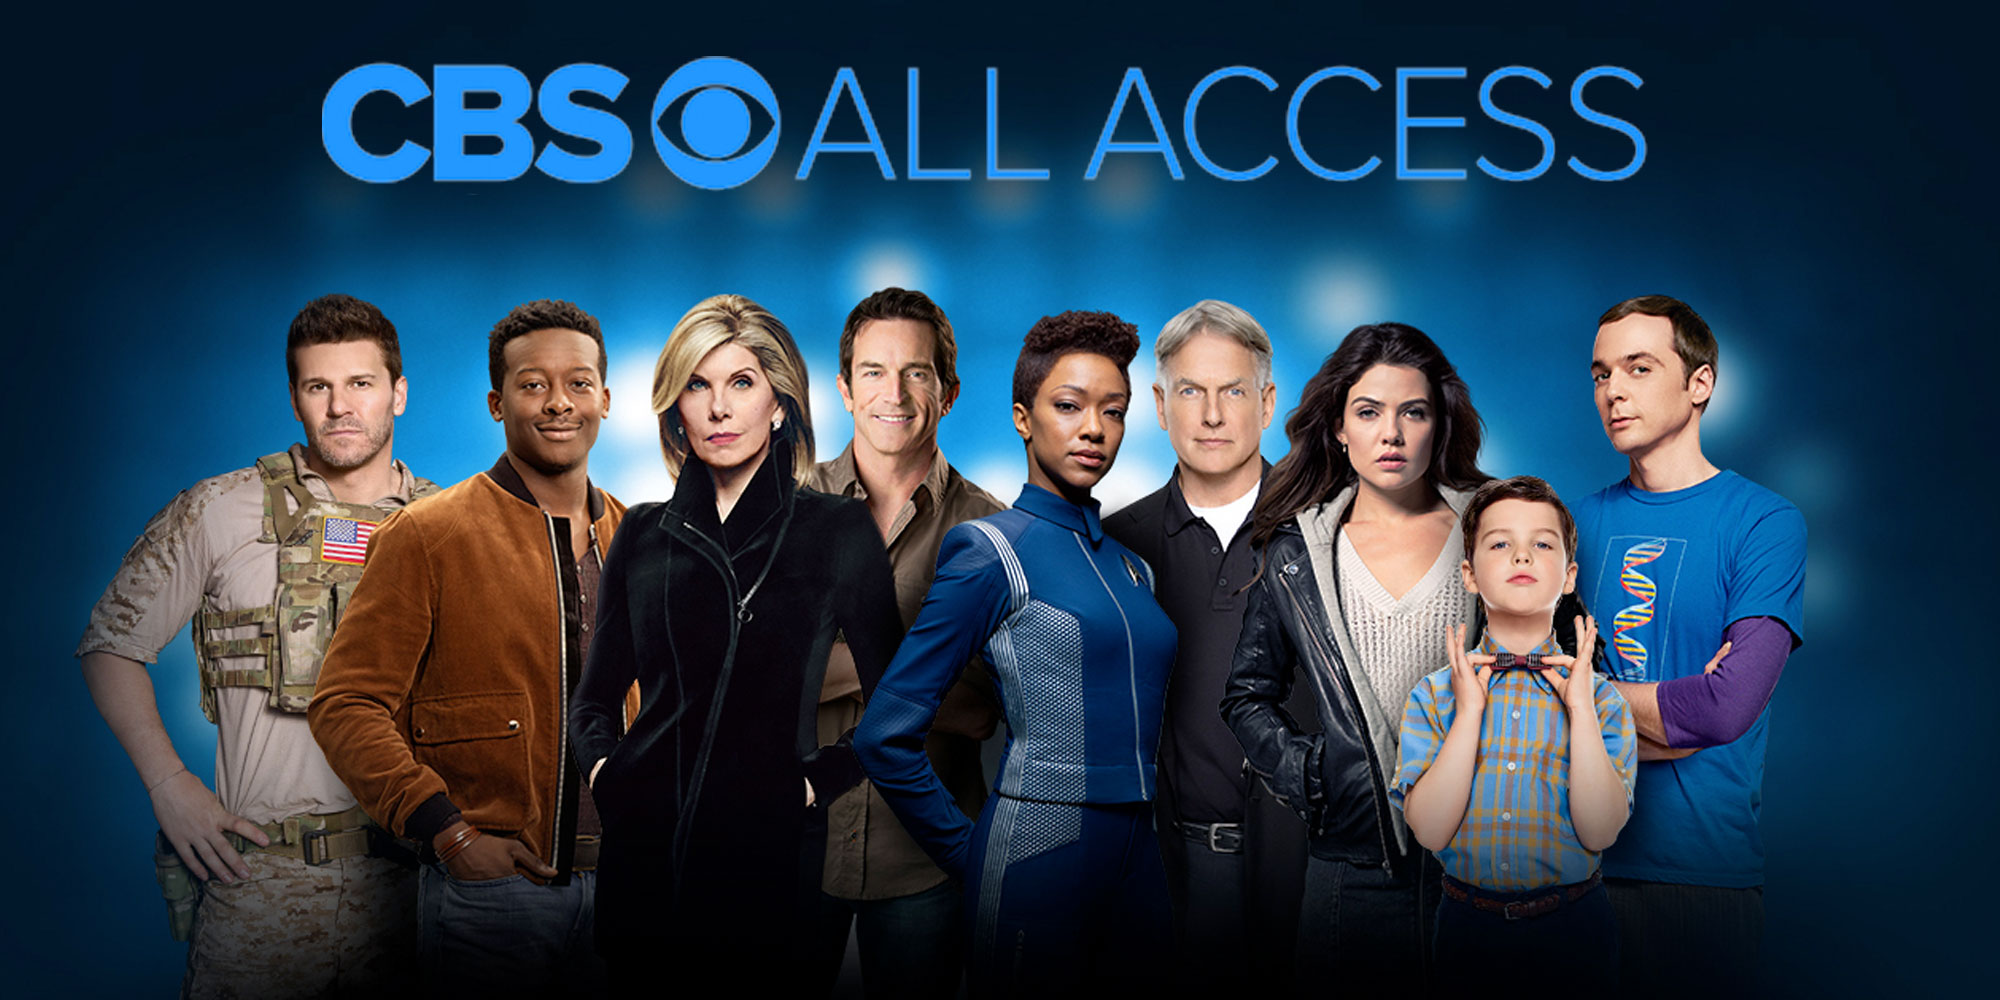 New/returning customers can get a FREE month of CBS All Access with this code - 9to5Toys